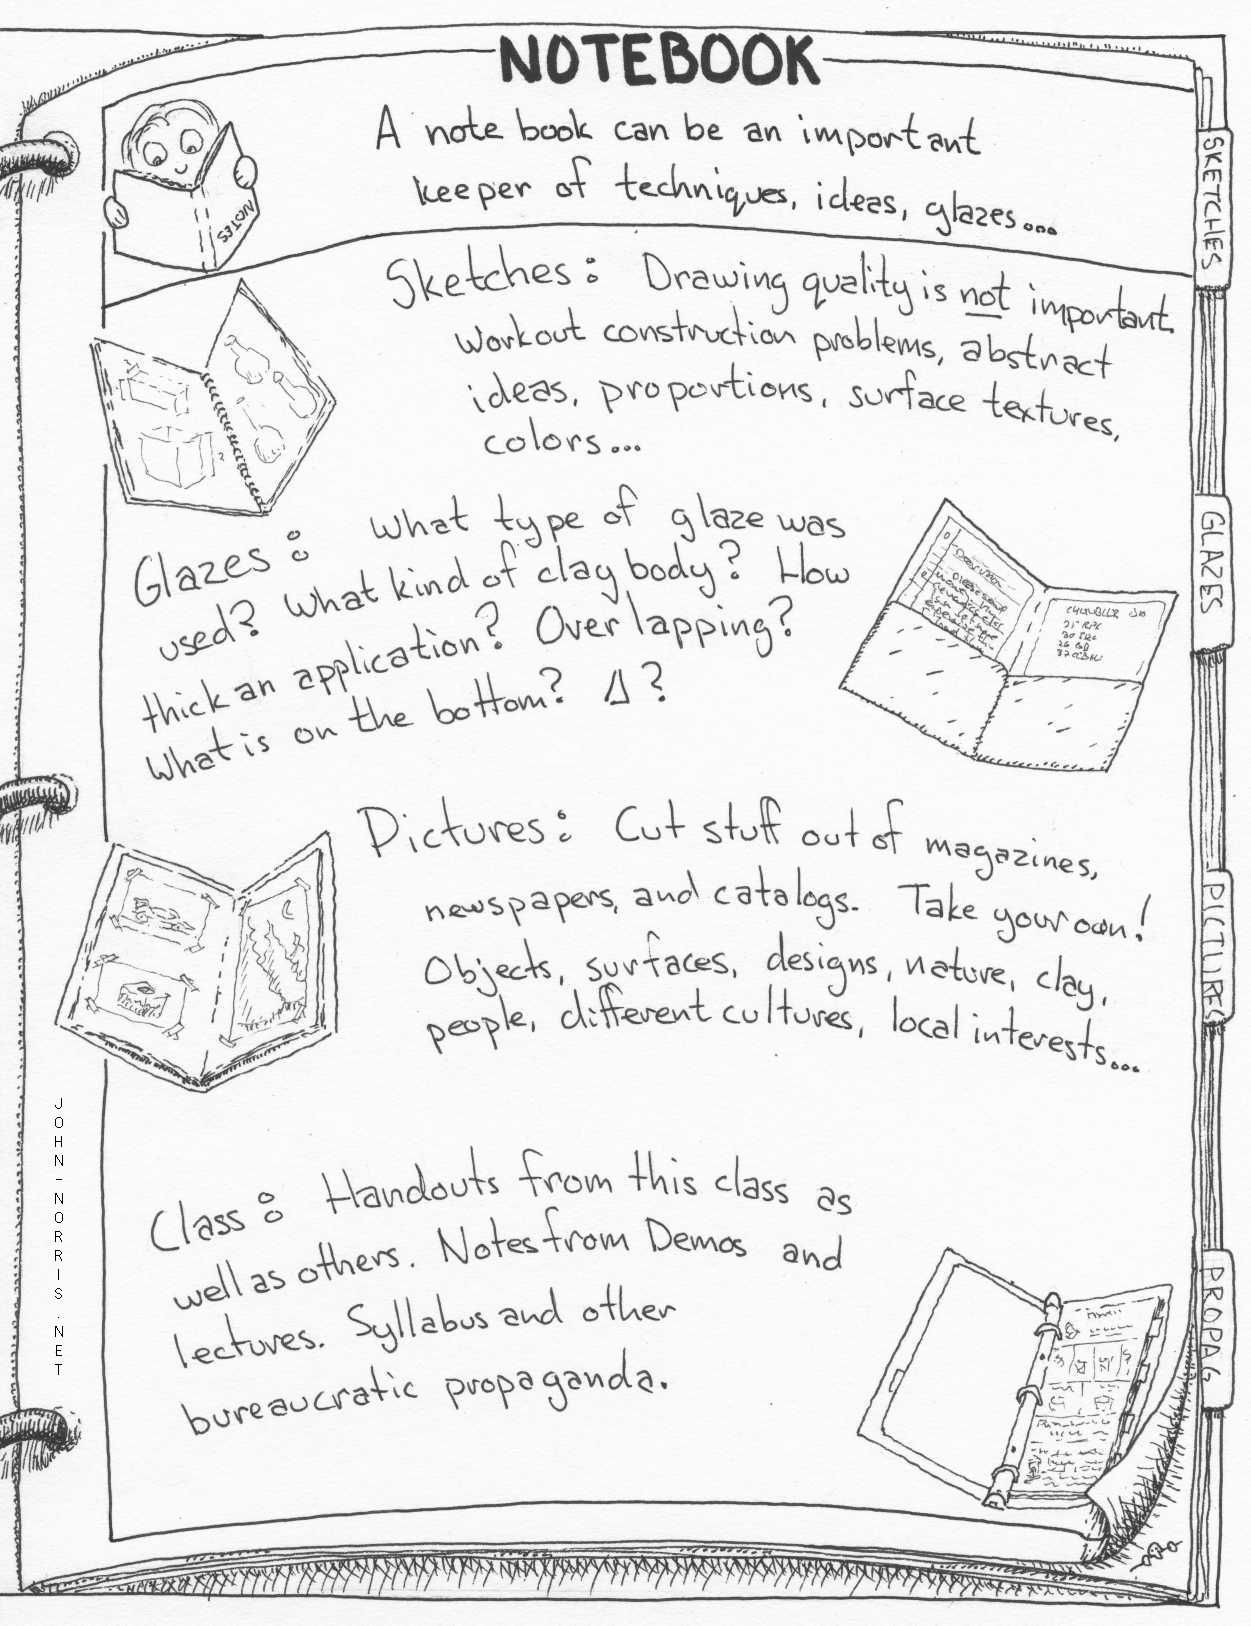 Potter S Notebook One Of The Most Important Things I Ve Learned Record Everything You Do